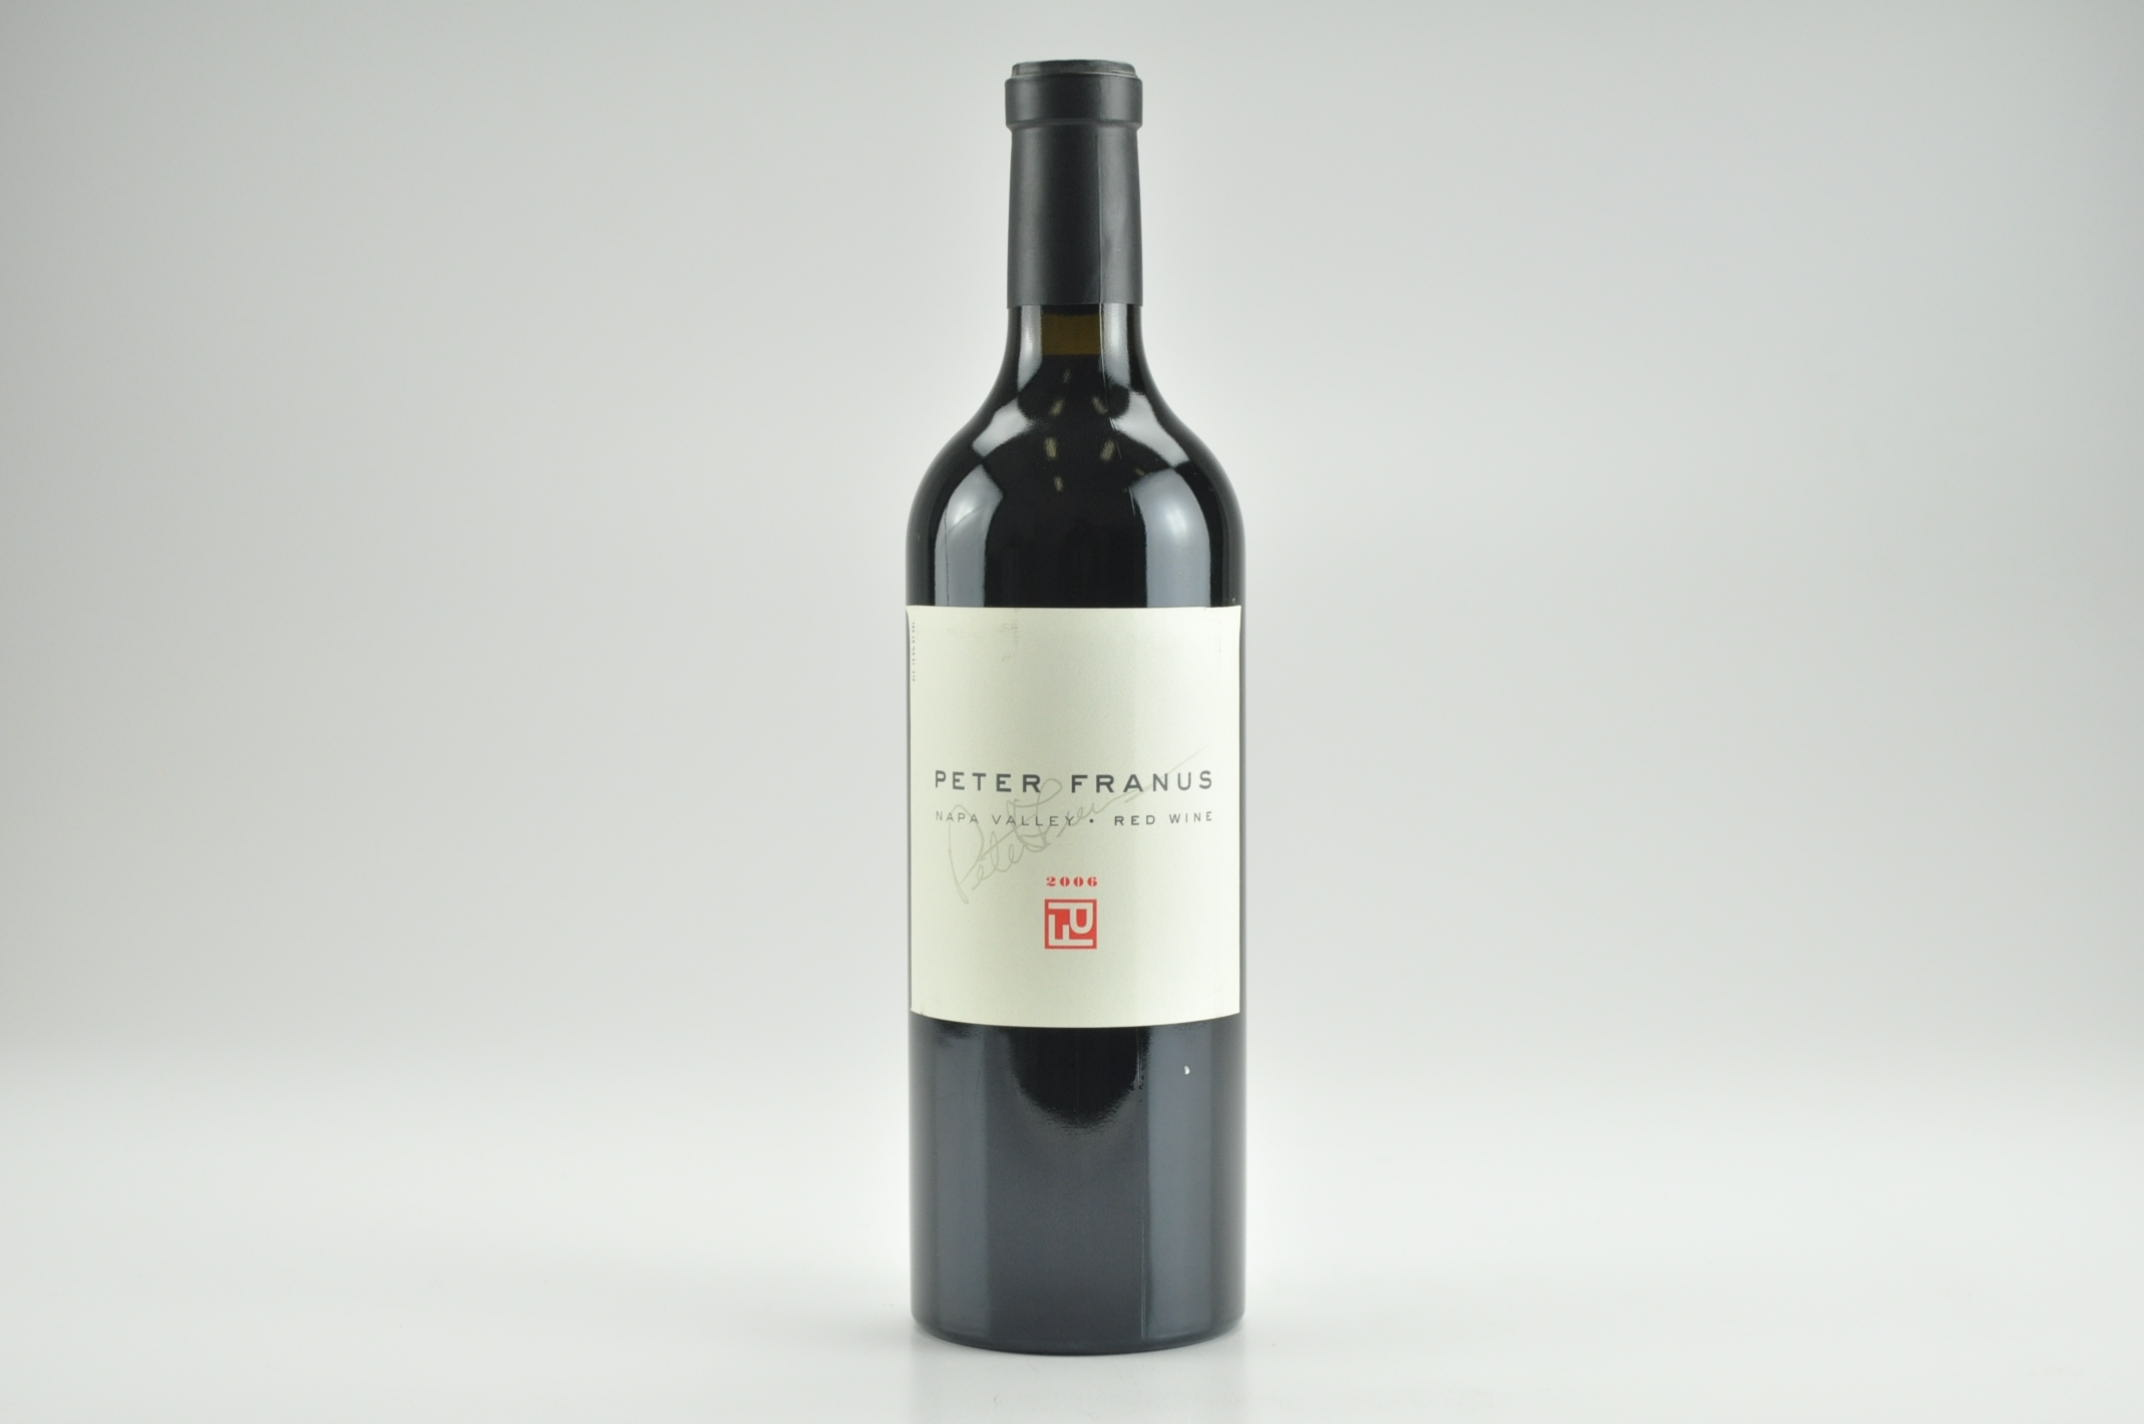 2006 Peter Franus Red Wine